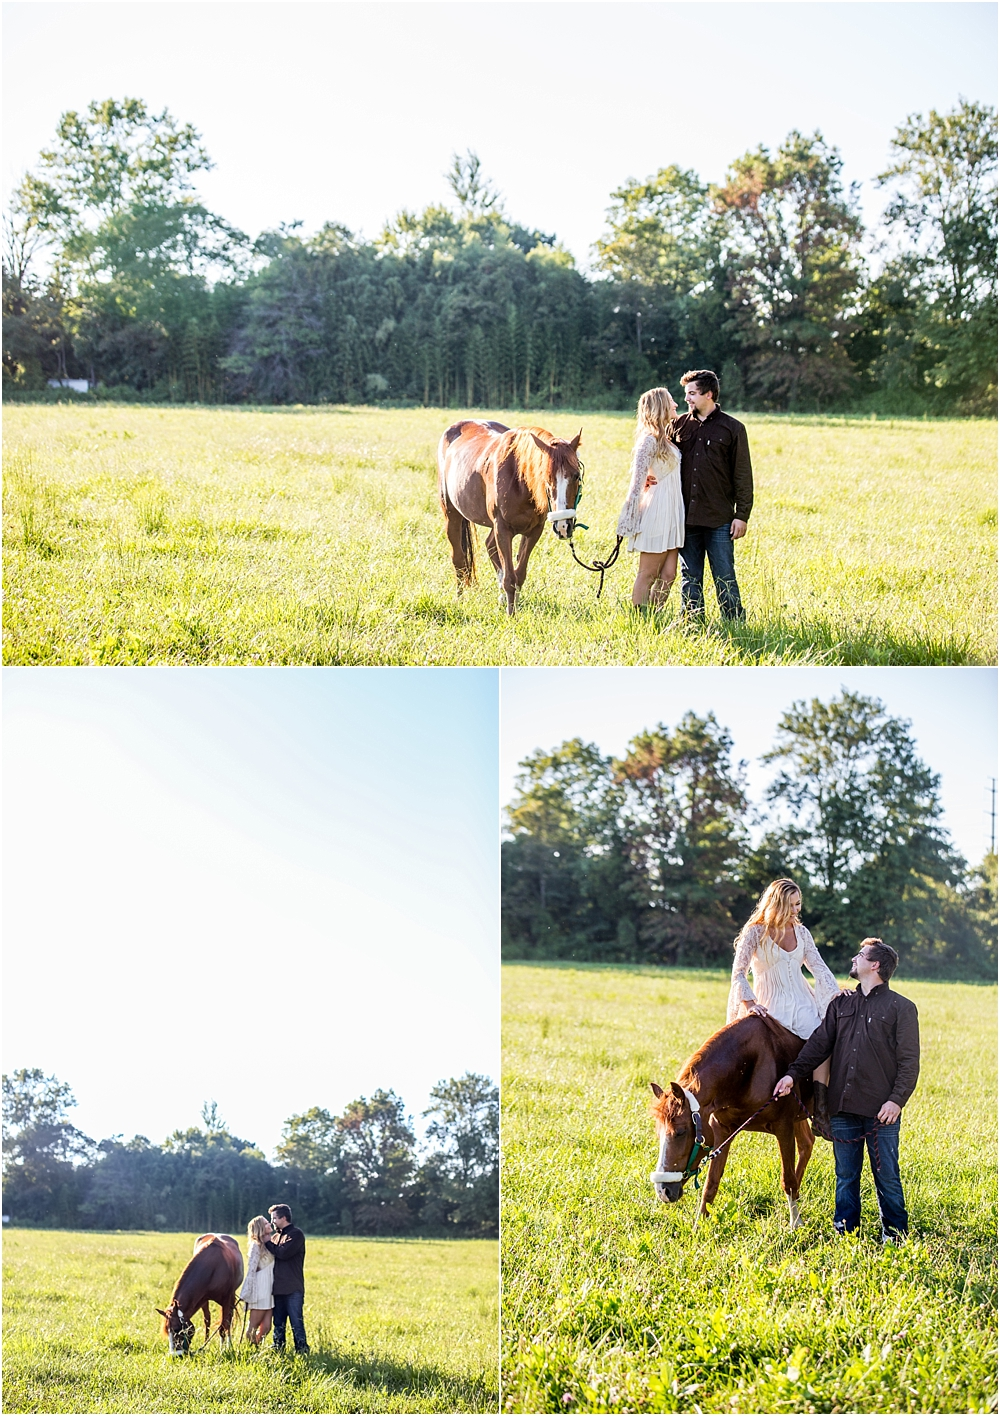 Sydney James Engagement Session with Horses Living Radiant Photography photos_0014.jpg